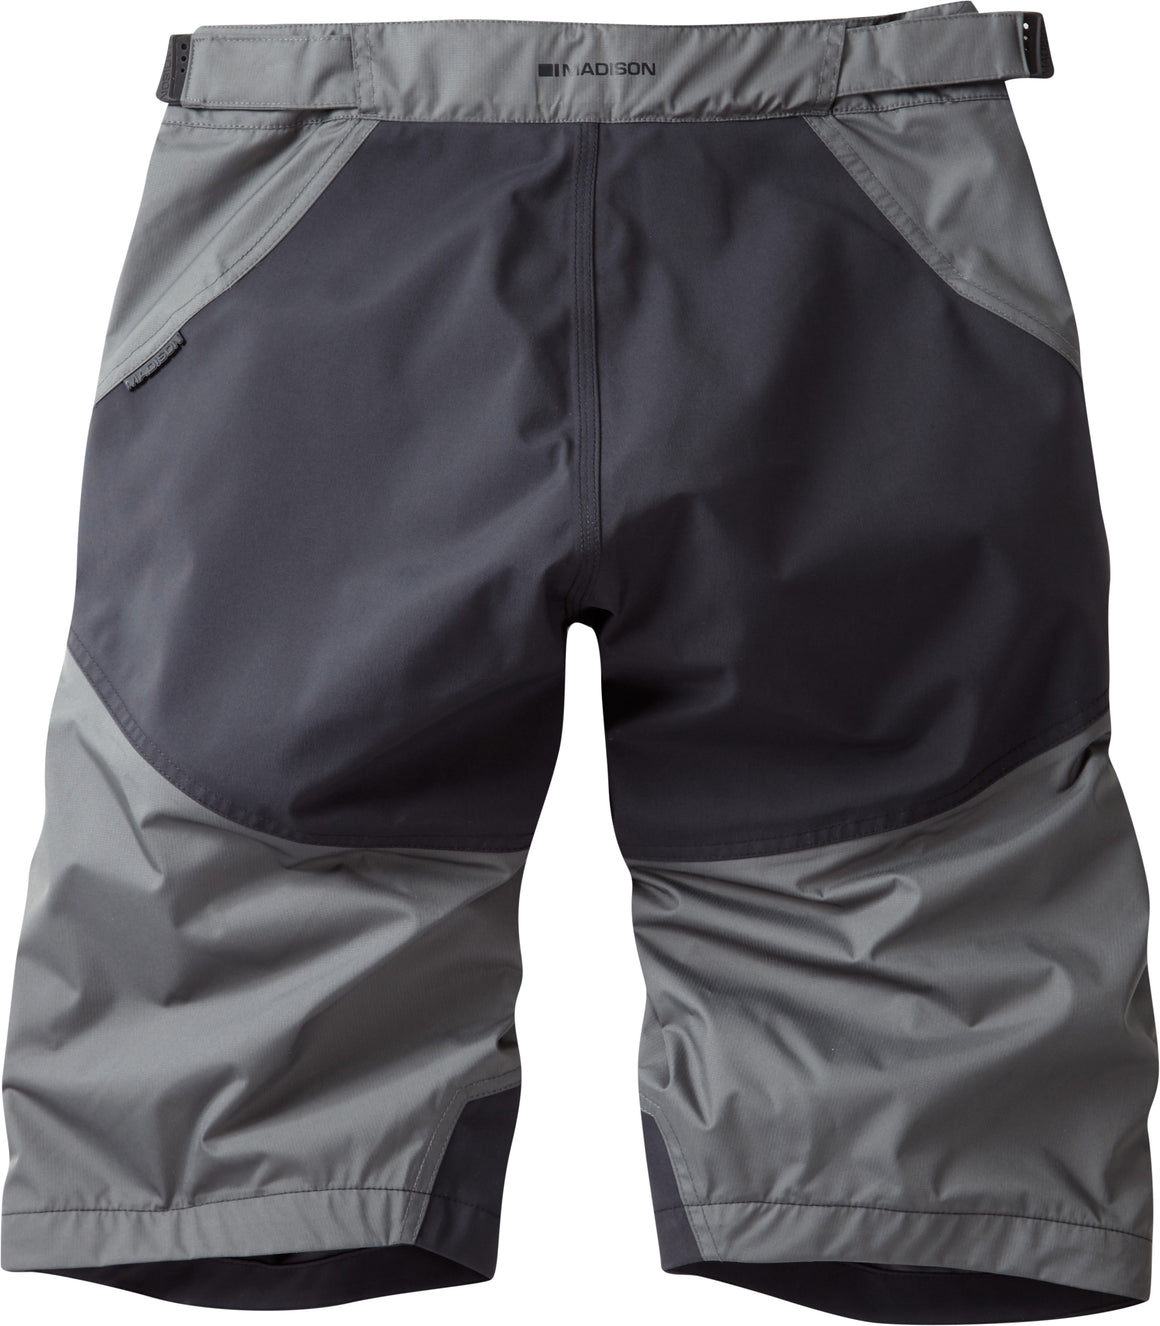 Madison DTE Women's Waterproof Shorts, Dark Shadow